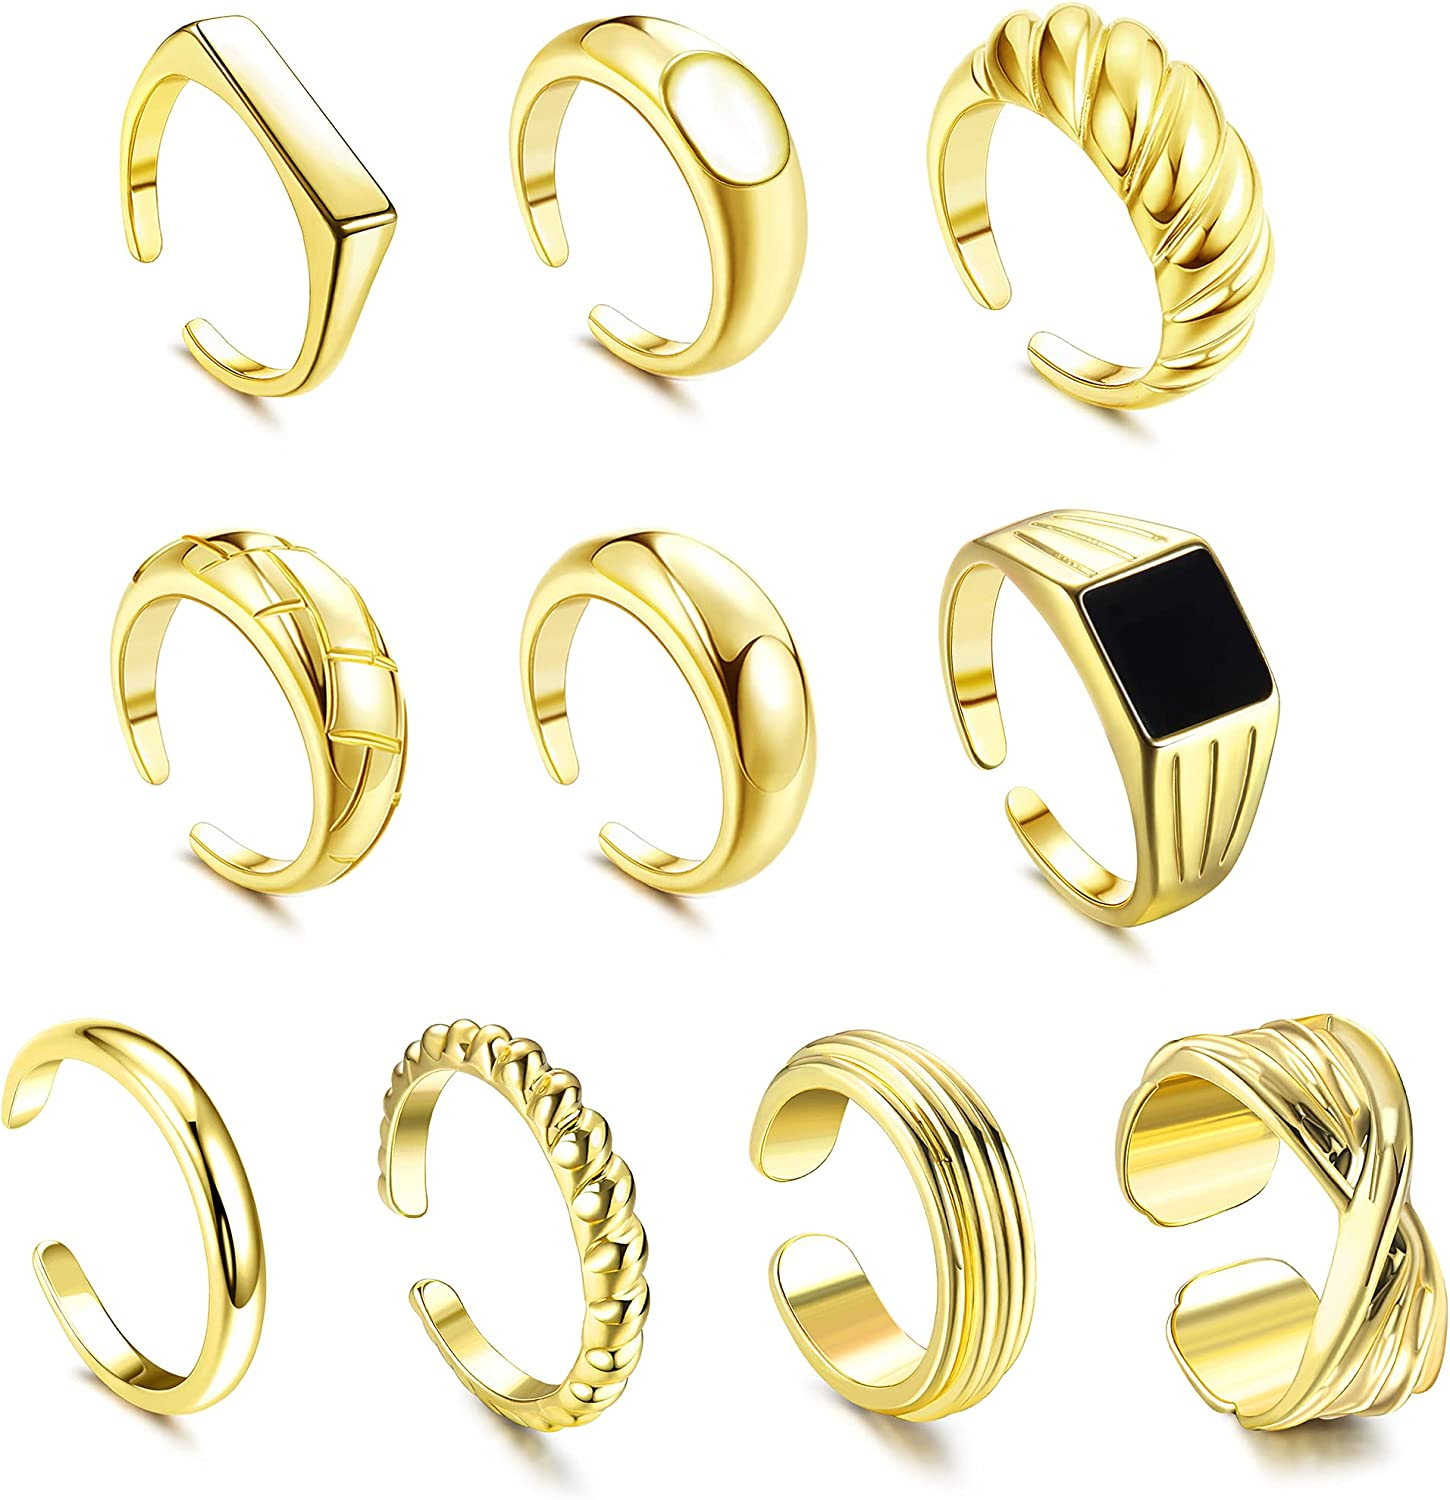 CASSIECA 10Pcs Gold Mail order cheap Dome Chunky Adjustable for Open Rings Limited Special Price Women